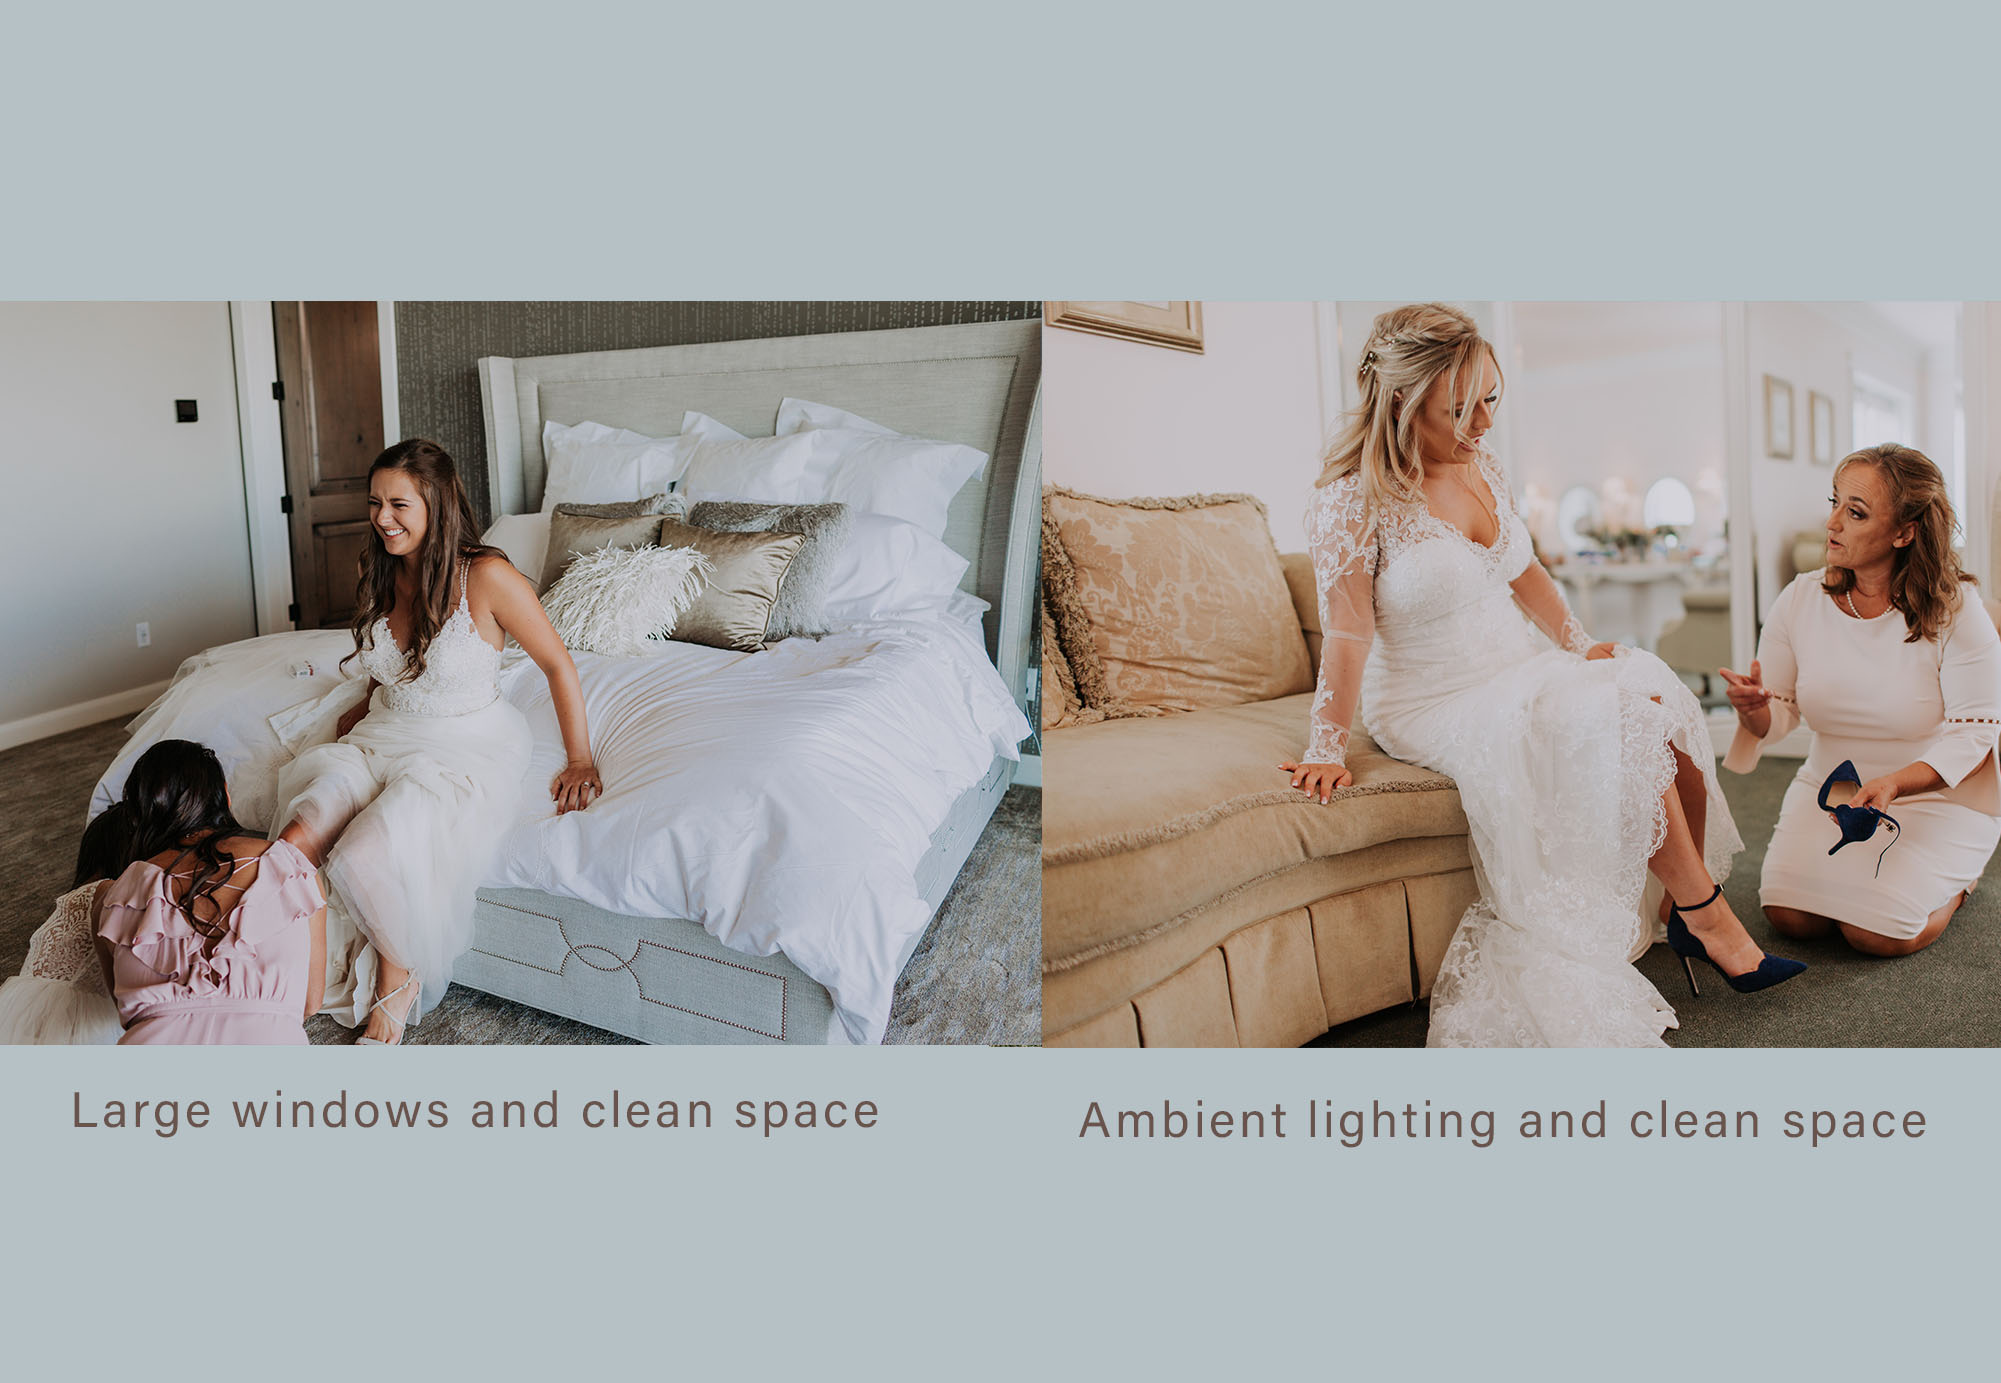 Here is what a clean space and large windows will do to photos. - Great lighting & beautiful skin tones. the rest of the lighting and tones is left to the room design.